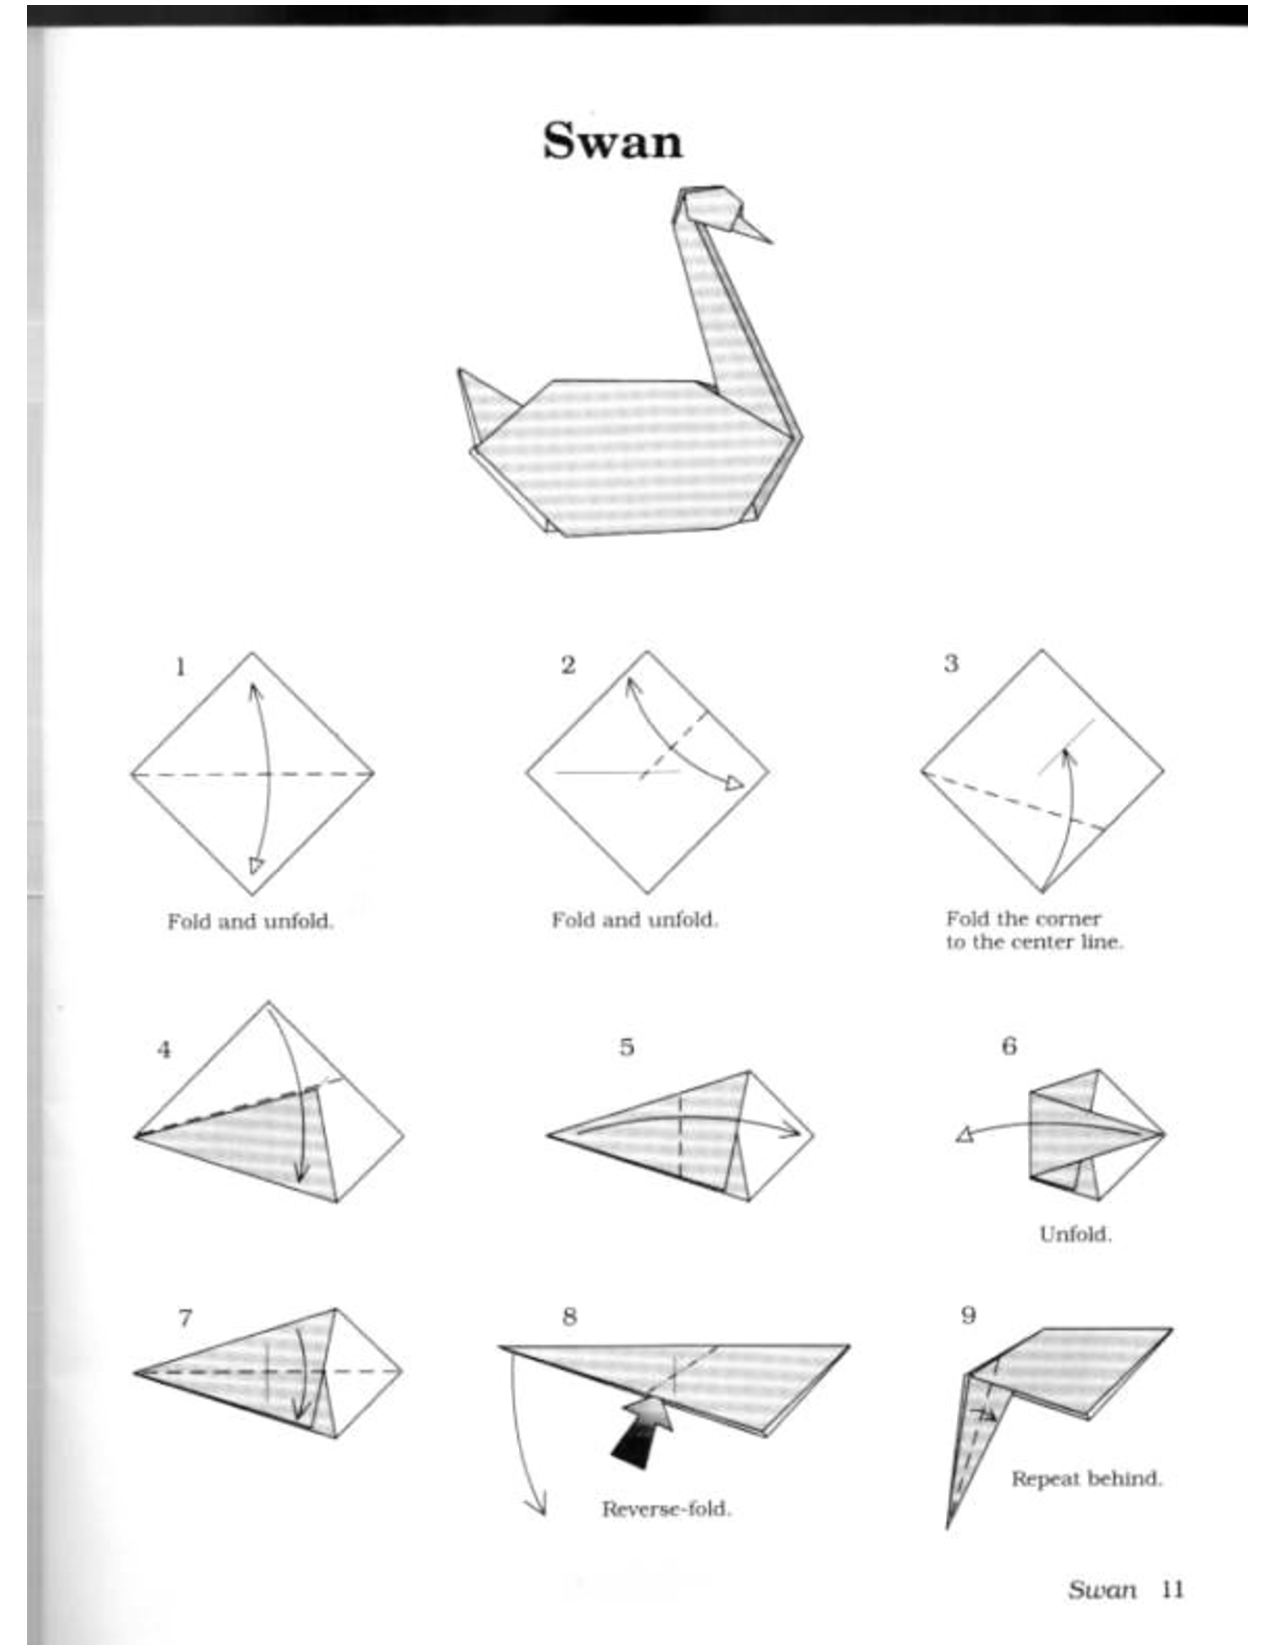 Prison break 2005 how to create the origami swans prison how to create the origami swans prison break pinterest prison break origami swan and origami jeuxipadfo Image collections